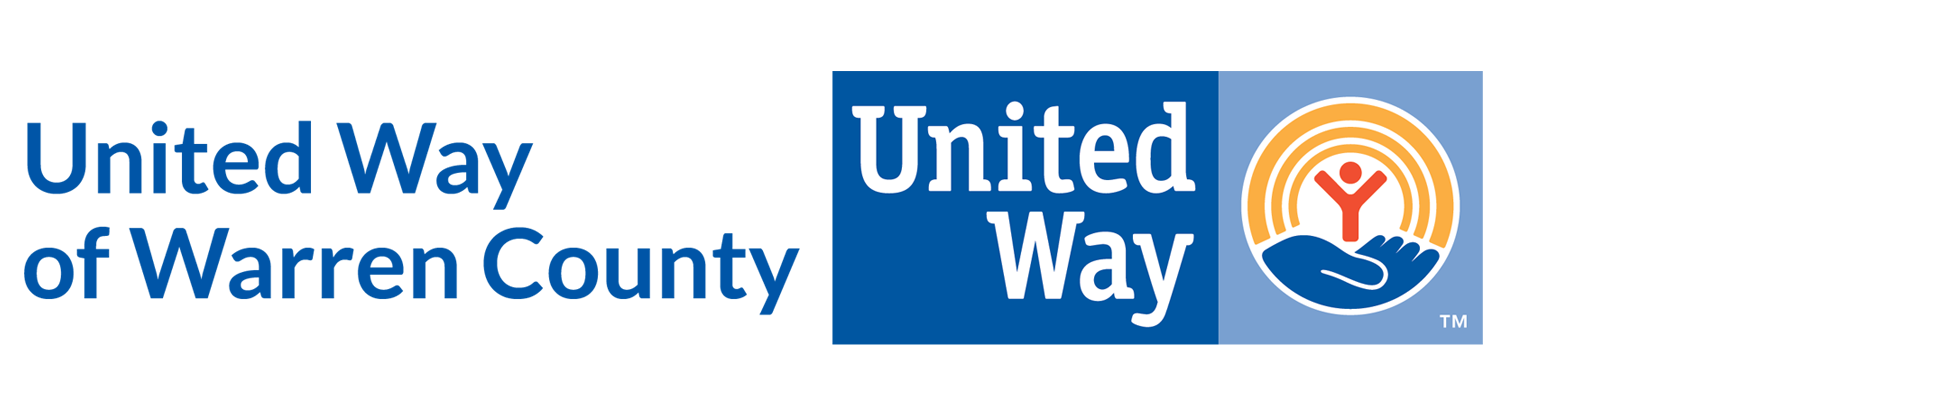 United Way Warren County